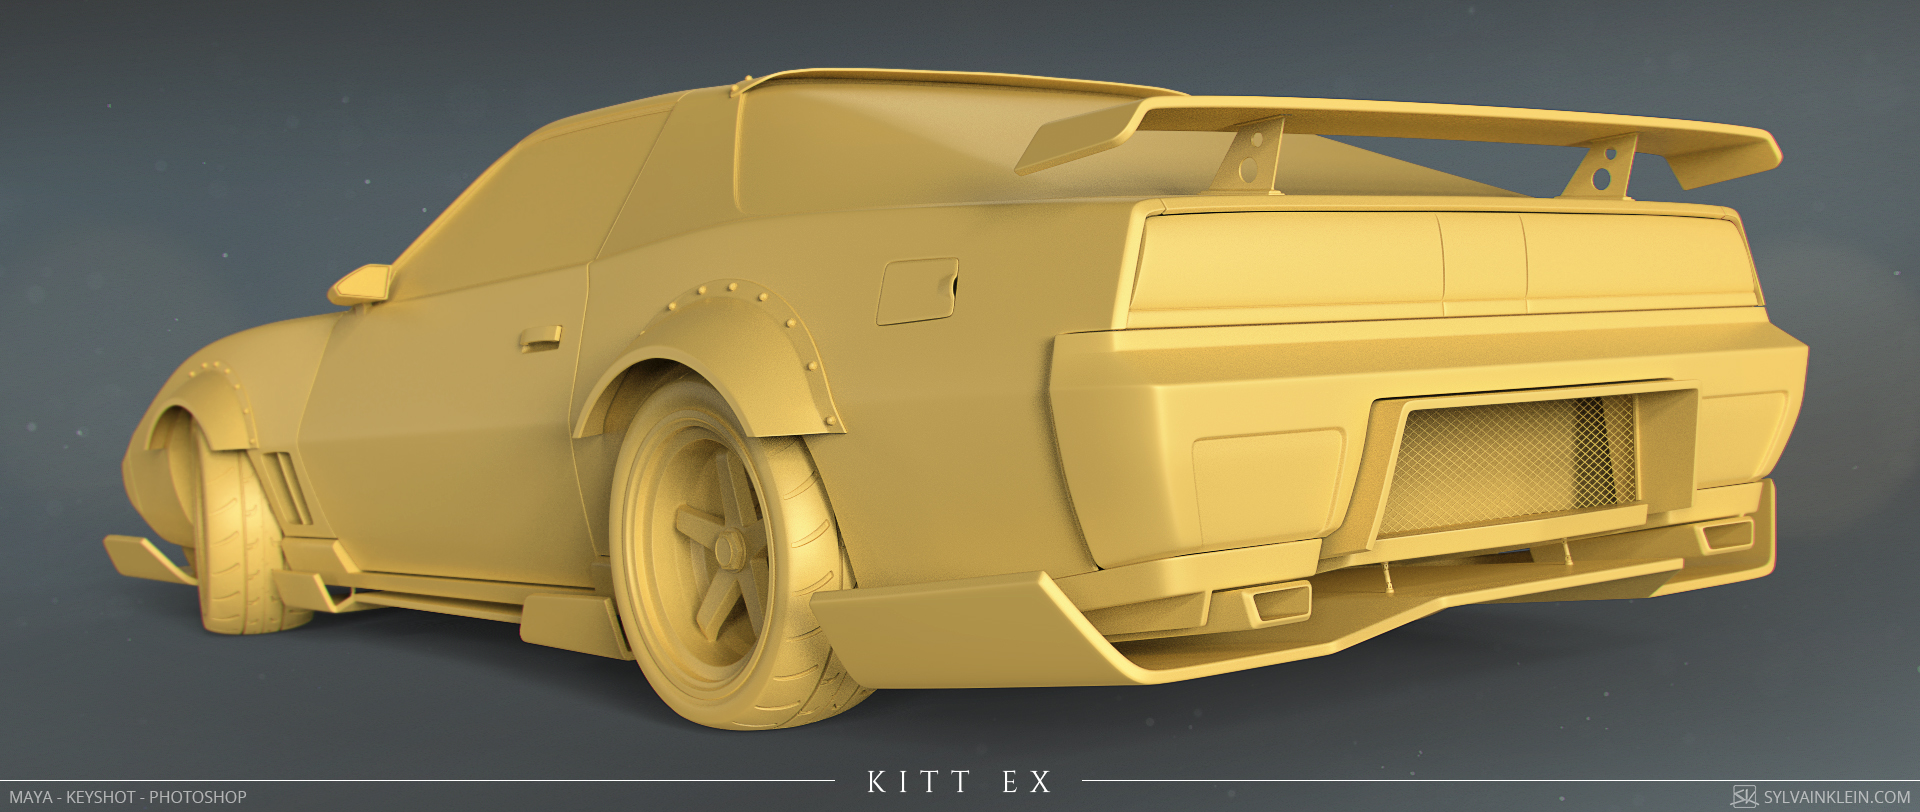 Humster 3D Car Rendering Competition - KITT EX (K2000 tribute)